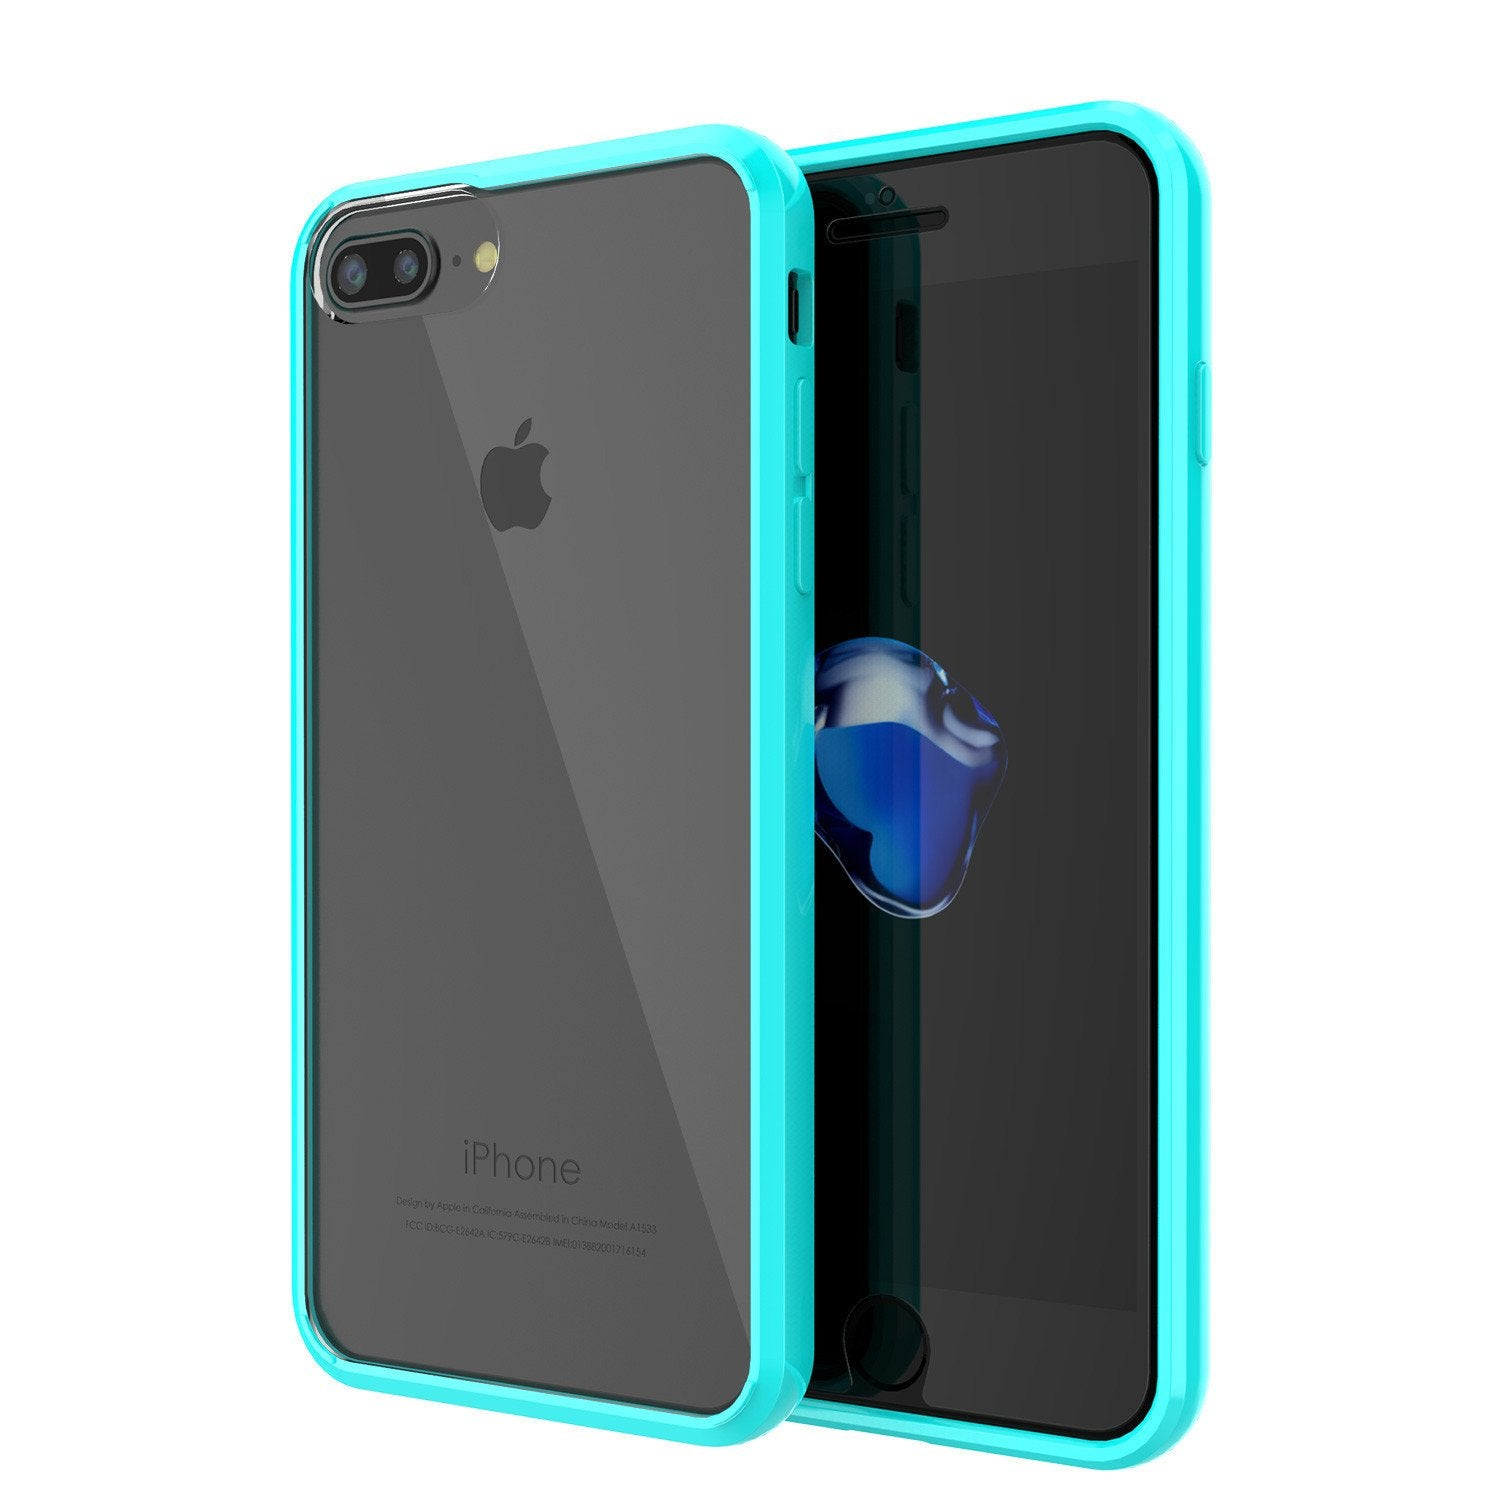 iPhone 7+ Plus Case Punkcase® LUCID 2.0 Light Blue Series for Apple iPhone 7+ Plus Slim | Slick Frame Lifetime Warranty Exchange